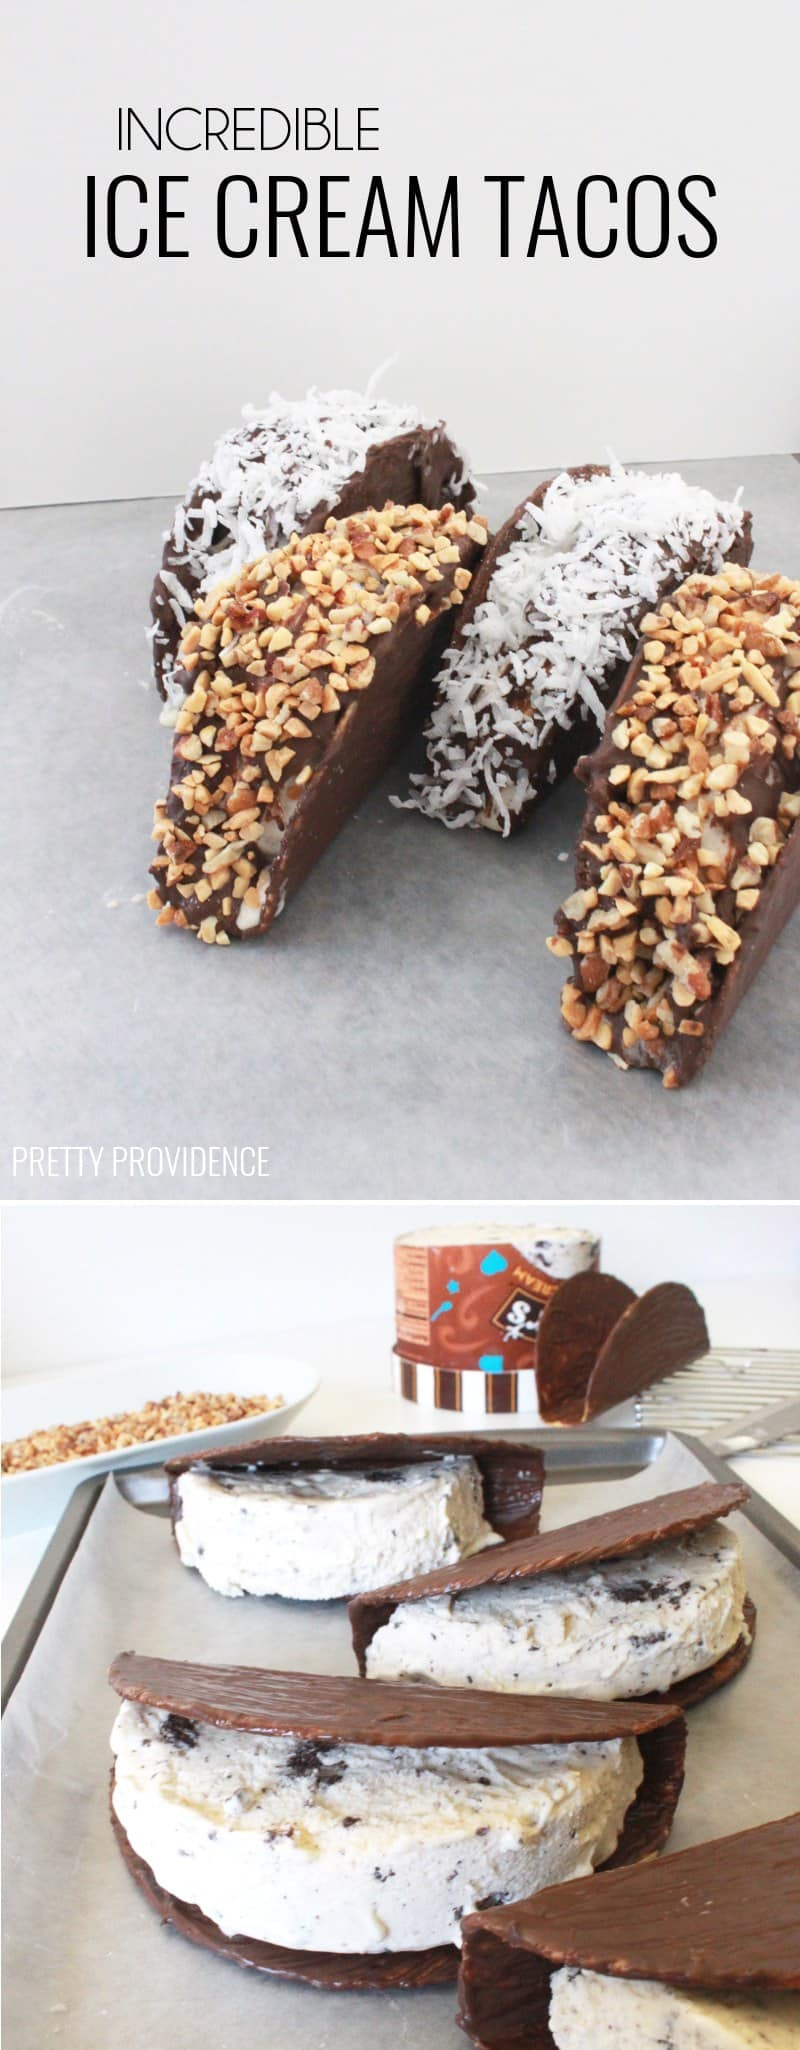 These ice cream tacos are INCREDIBLE and surprisingly easy too!